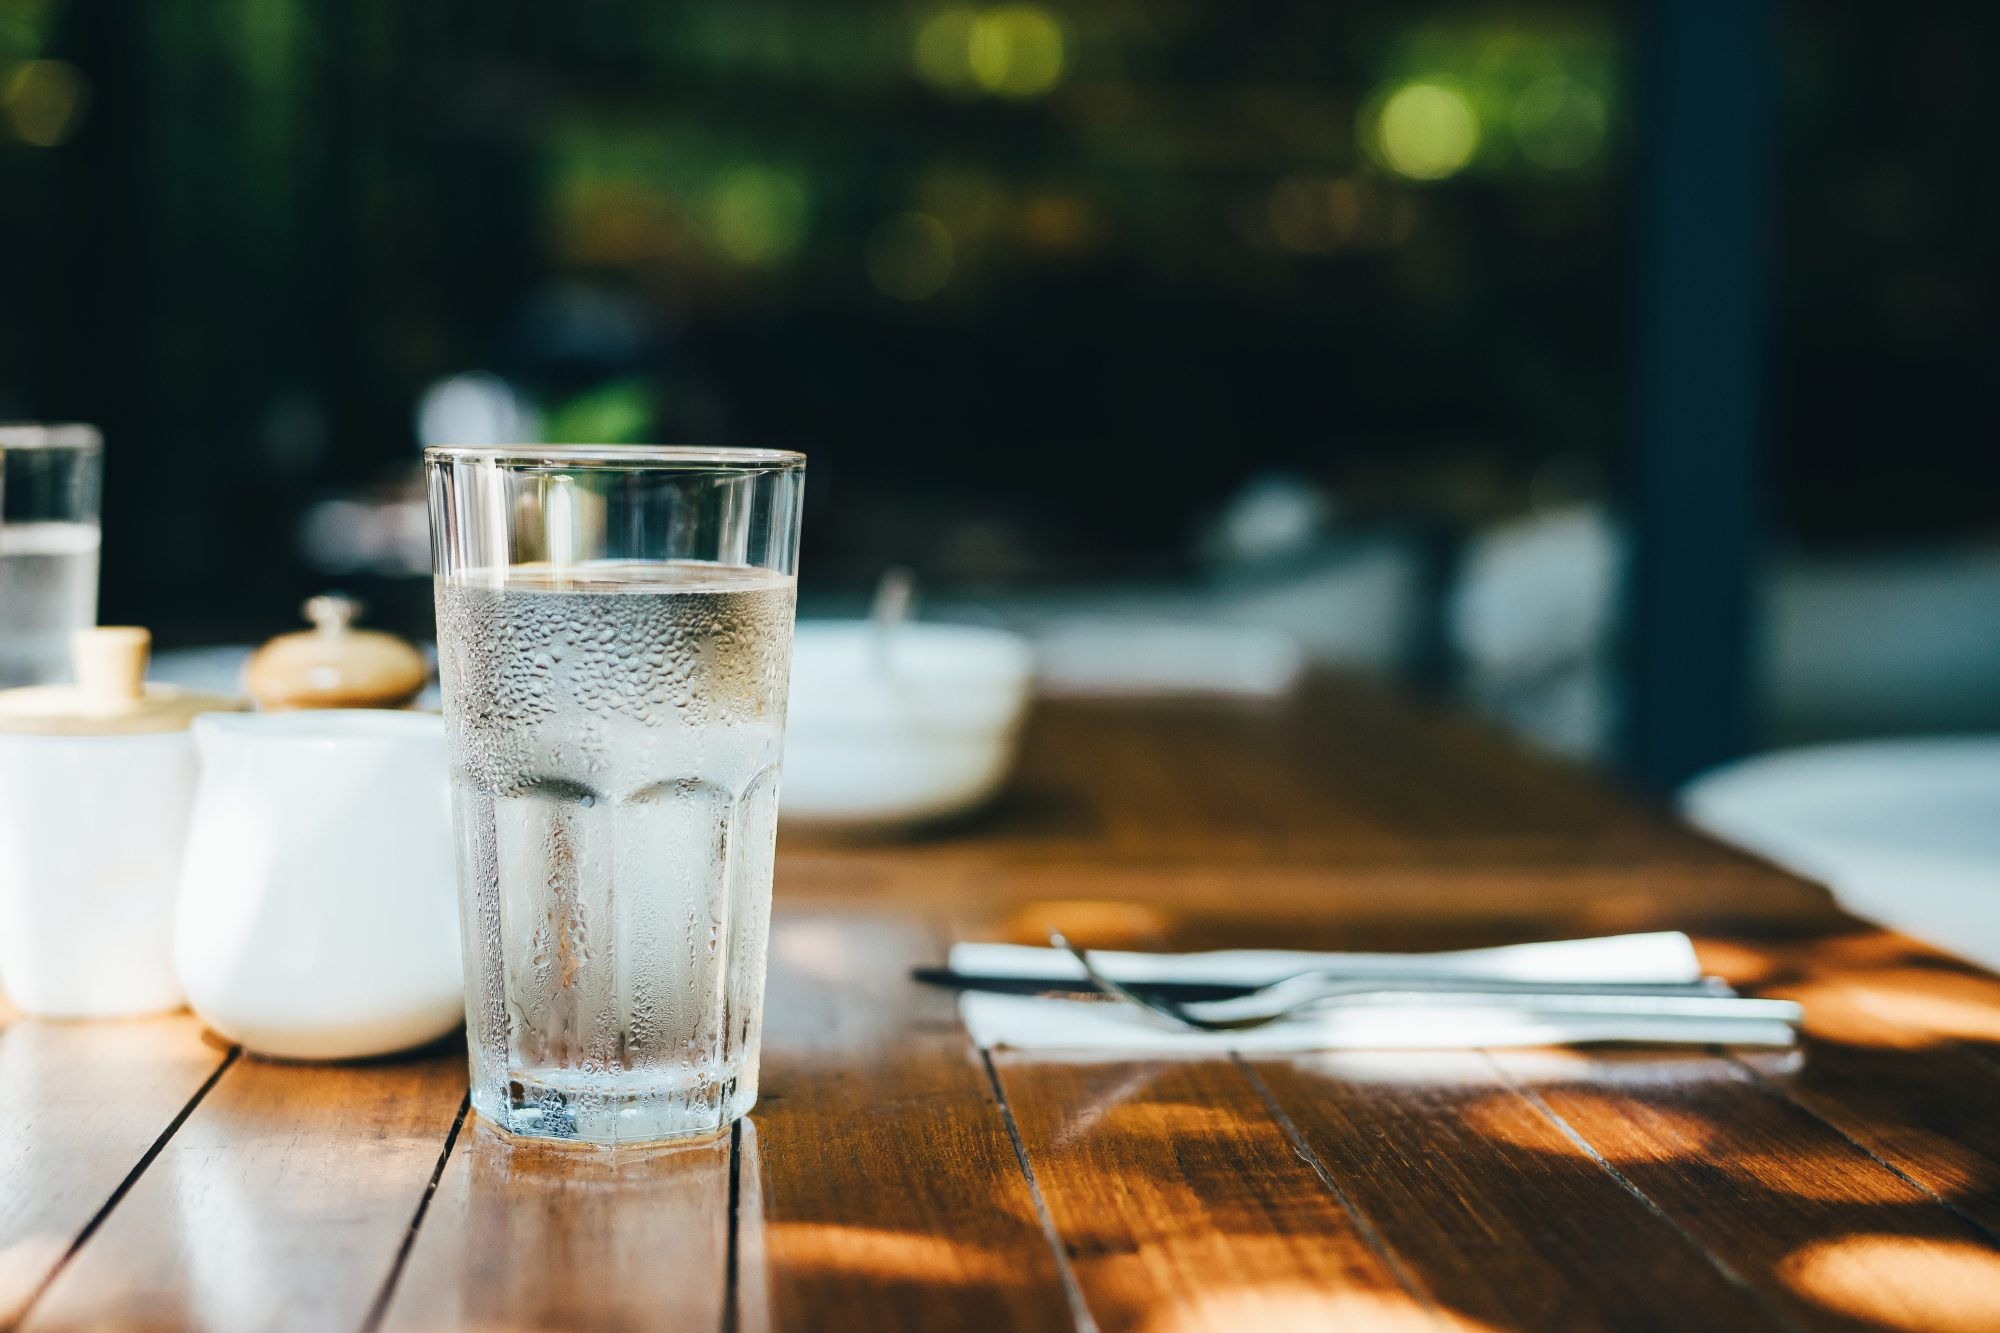 A glass of water served on table in an outdoor restaurant against beautiful sunlight